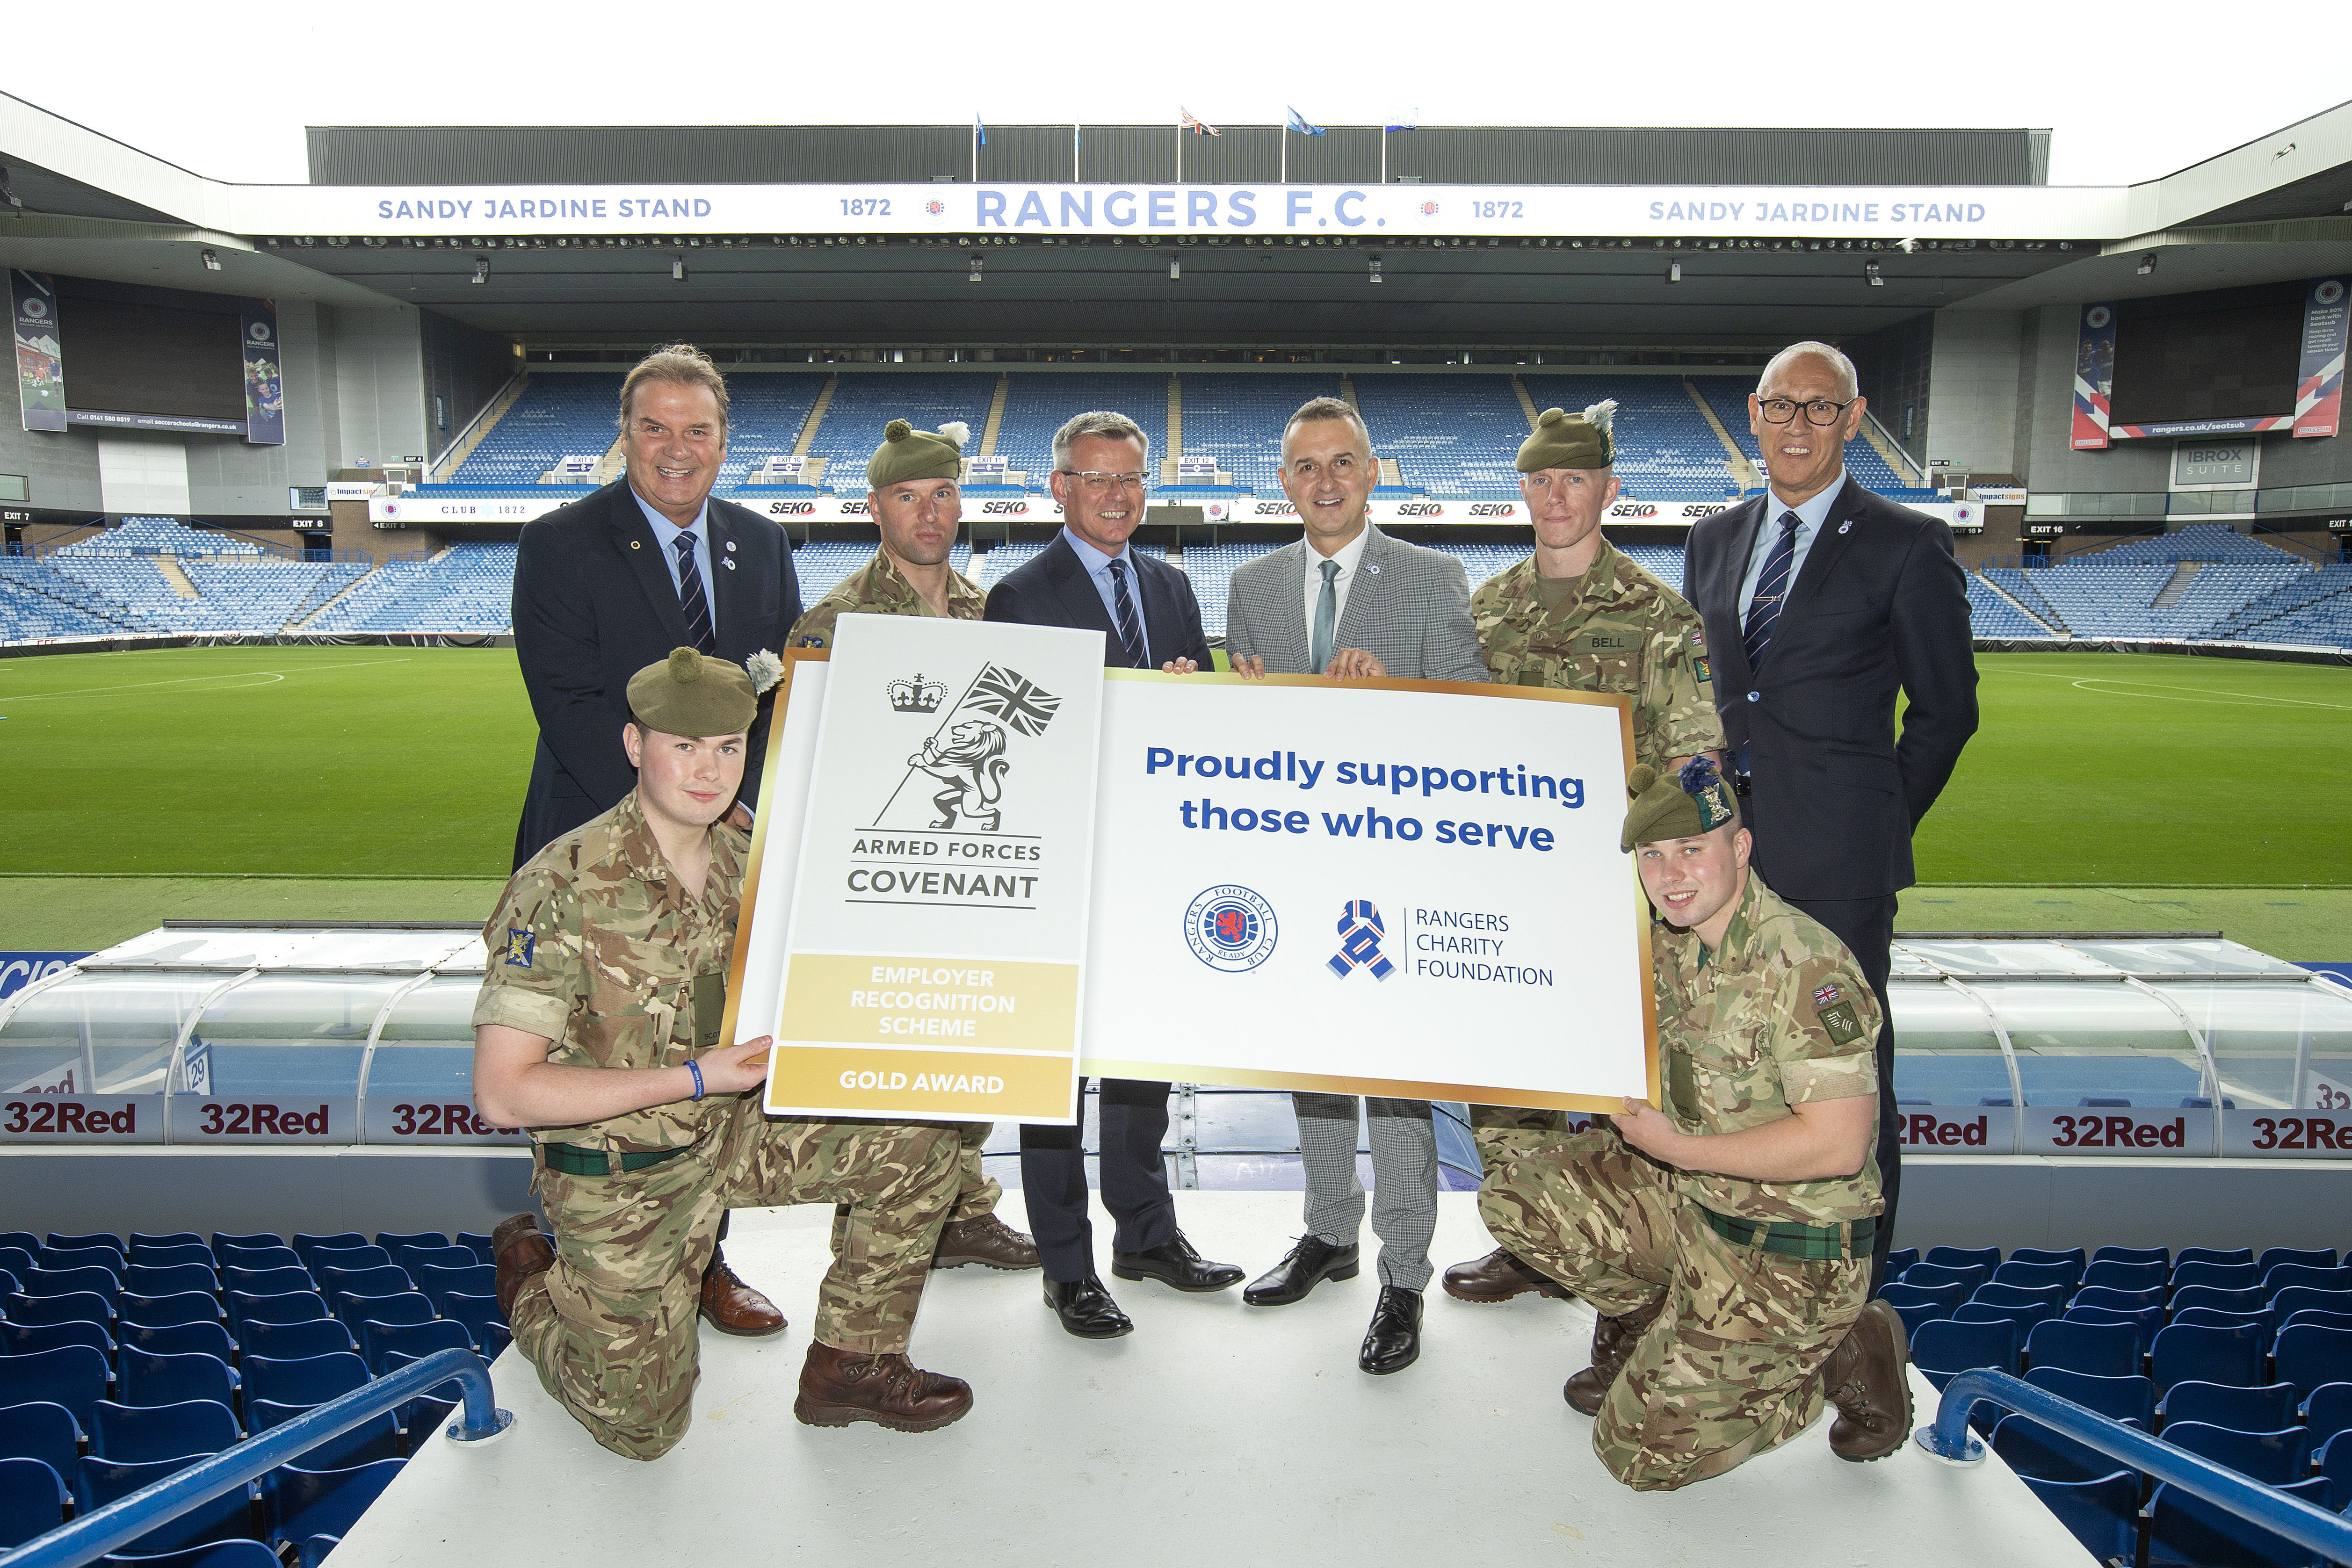 Armed Forces Foundation >> Armed Forces Support Rangers Charity Foundation